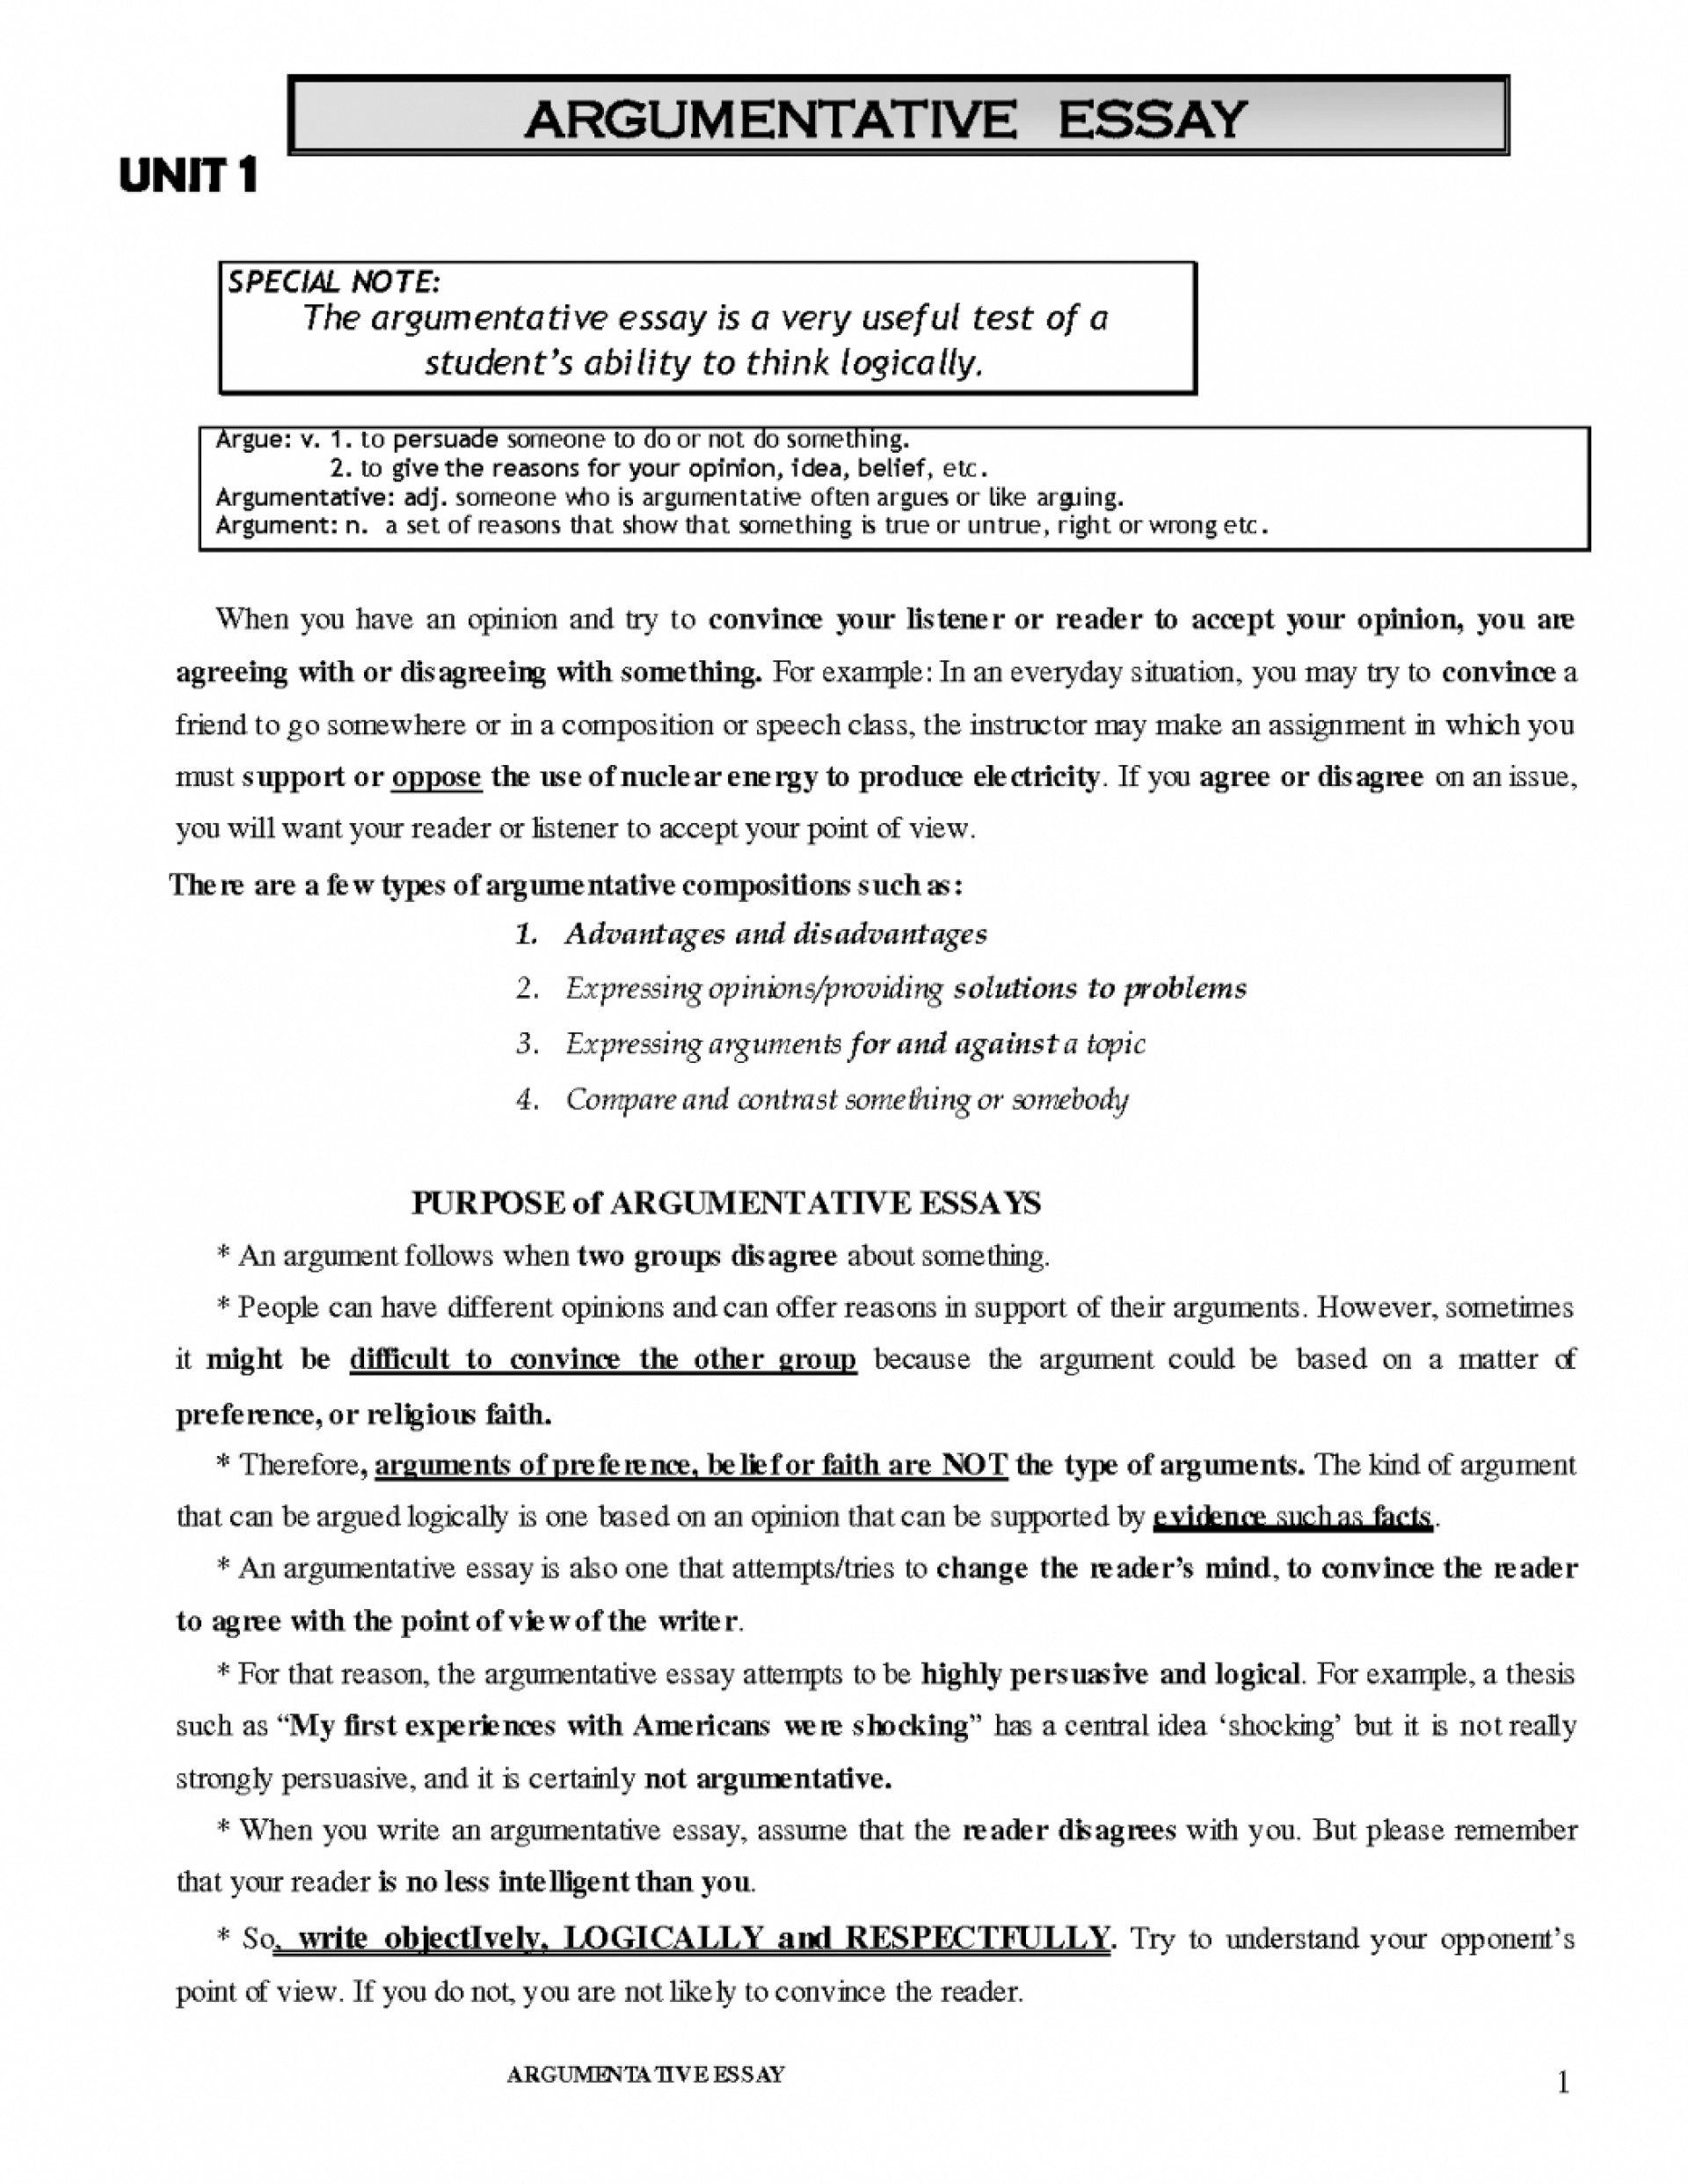 014 Write An Argumentative Essay Writing Persuasive Essays Ppt Video Step By Lwhae Argument Powerpoint About Fire Prevention Scope Middle School Edgenuity Thesis Pdf Surprising Sample Example In Which You State And Defend 1920